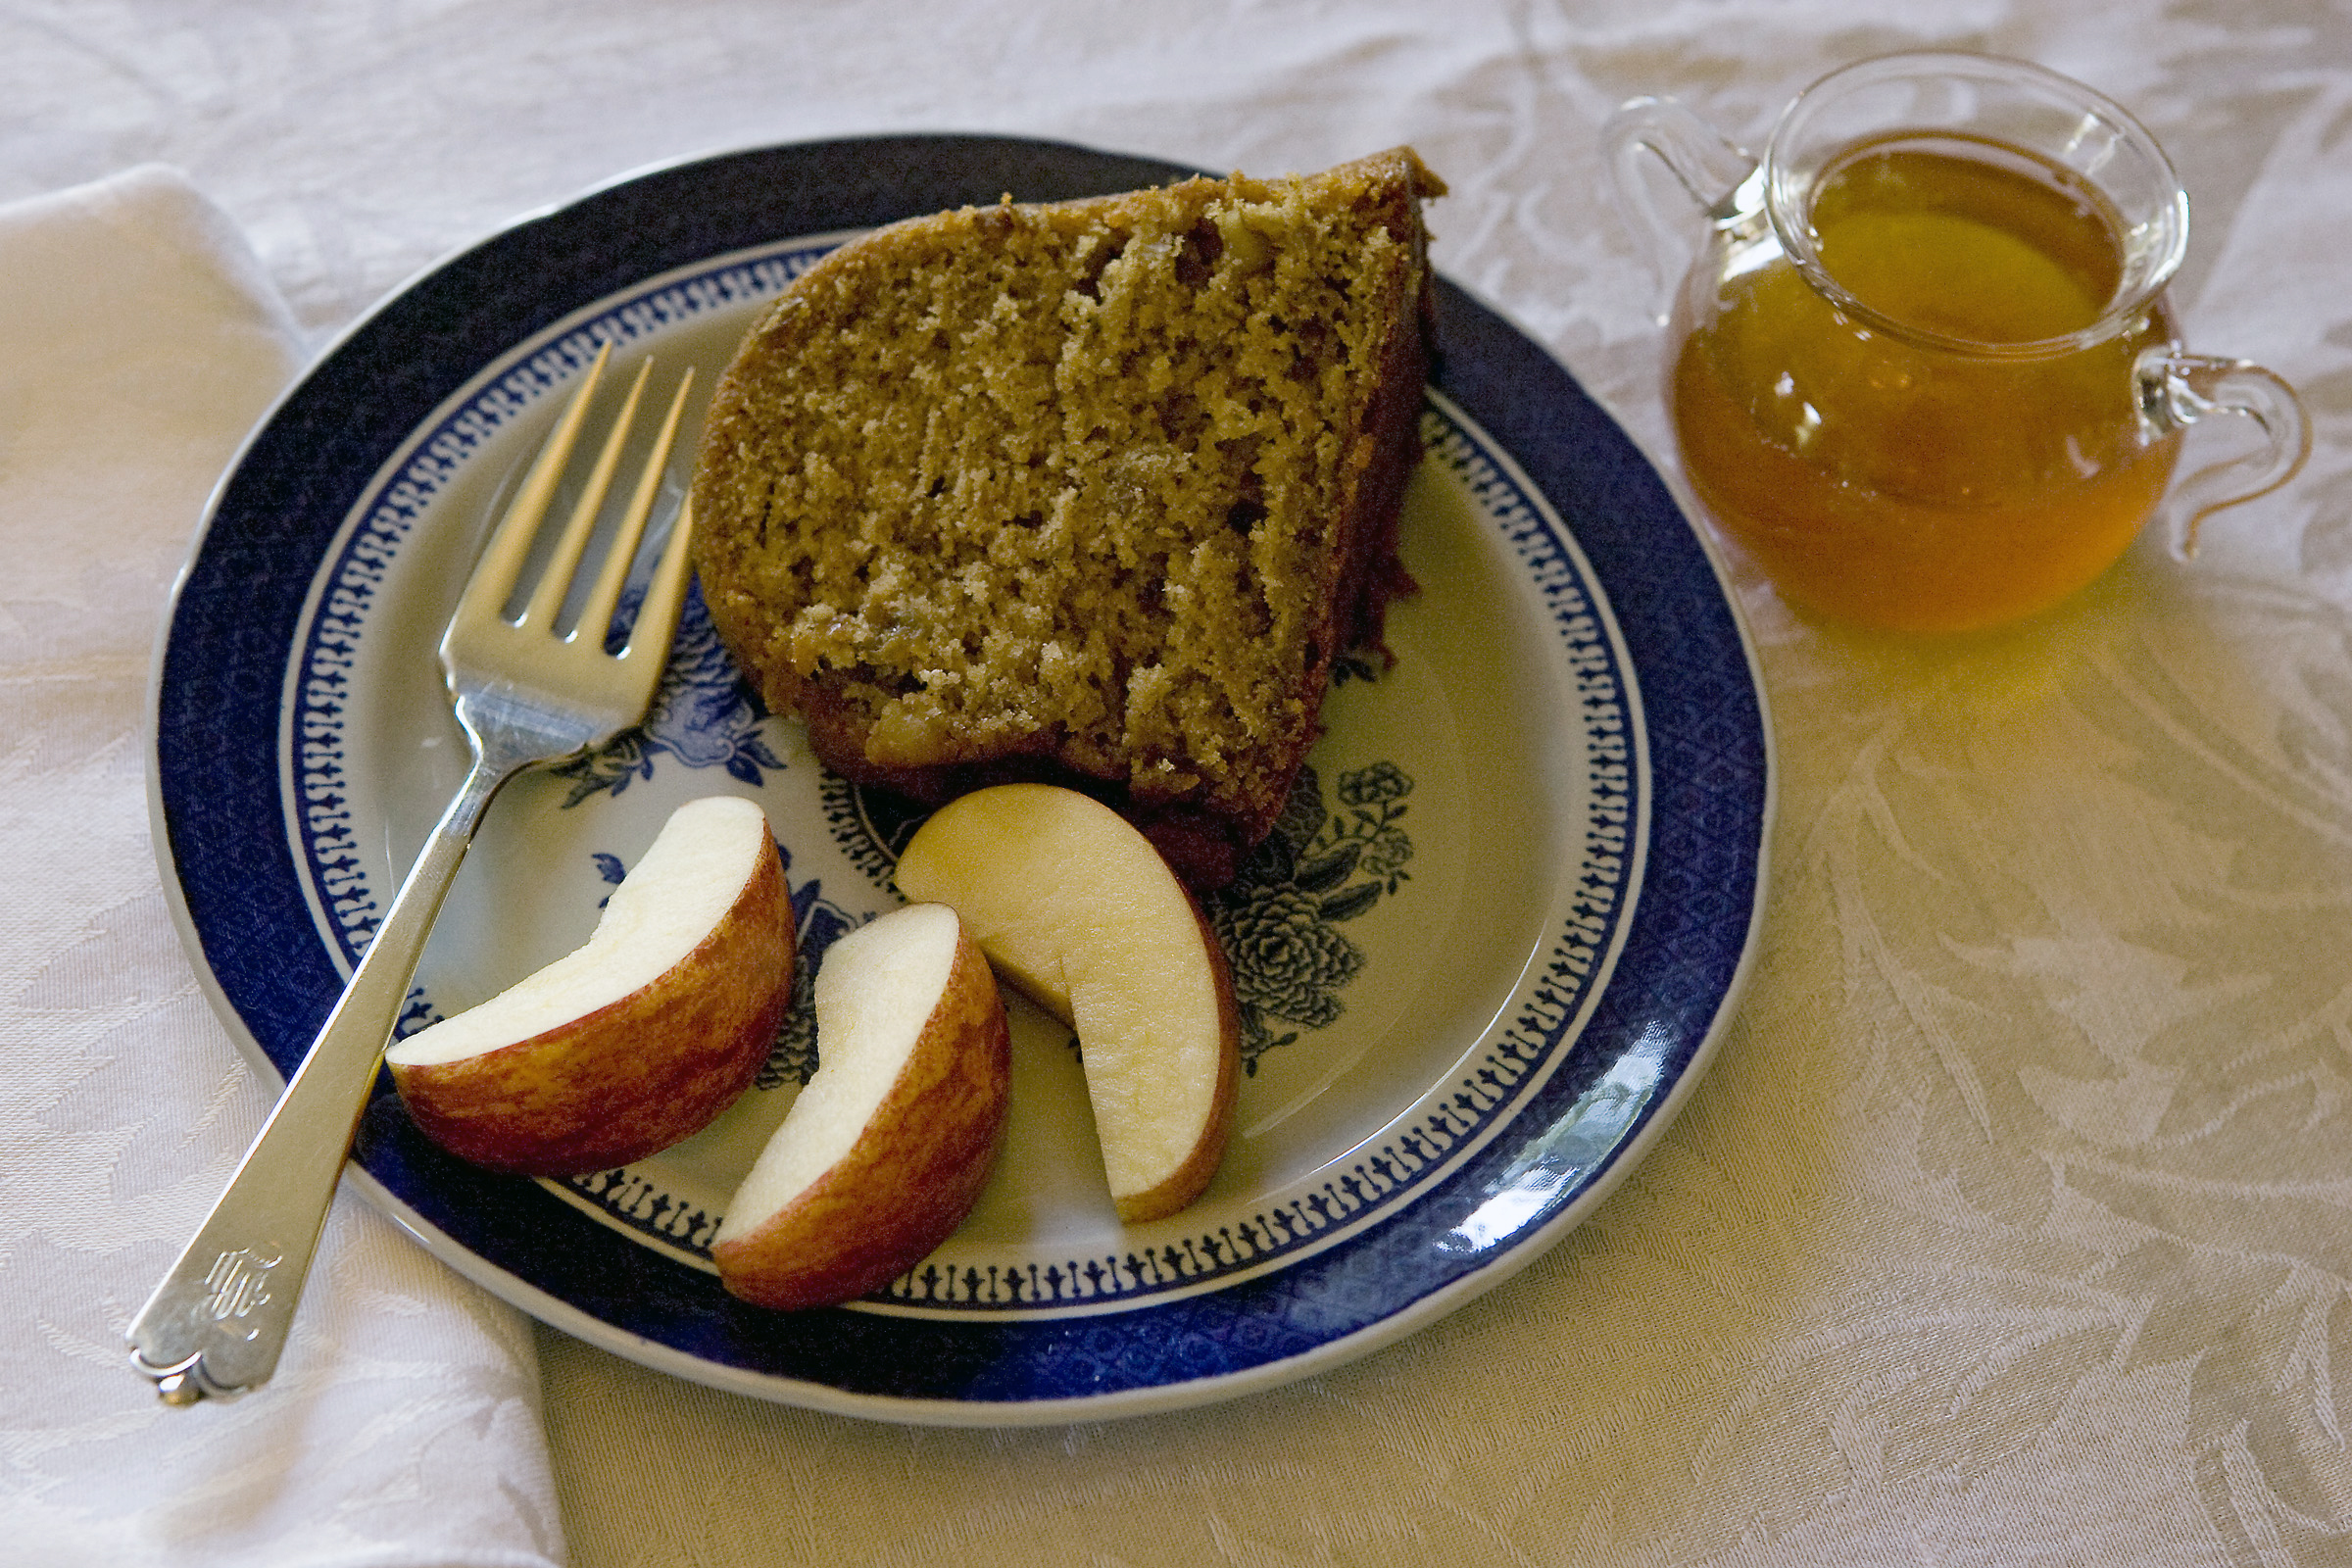 A traditional Jewish honey cake. (2009 photo by Larry Kolvoord / American-Statesman)